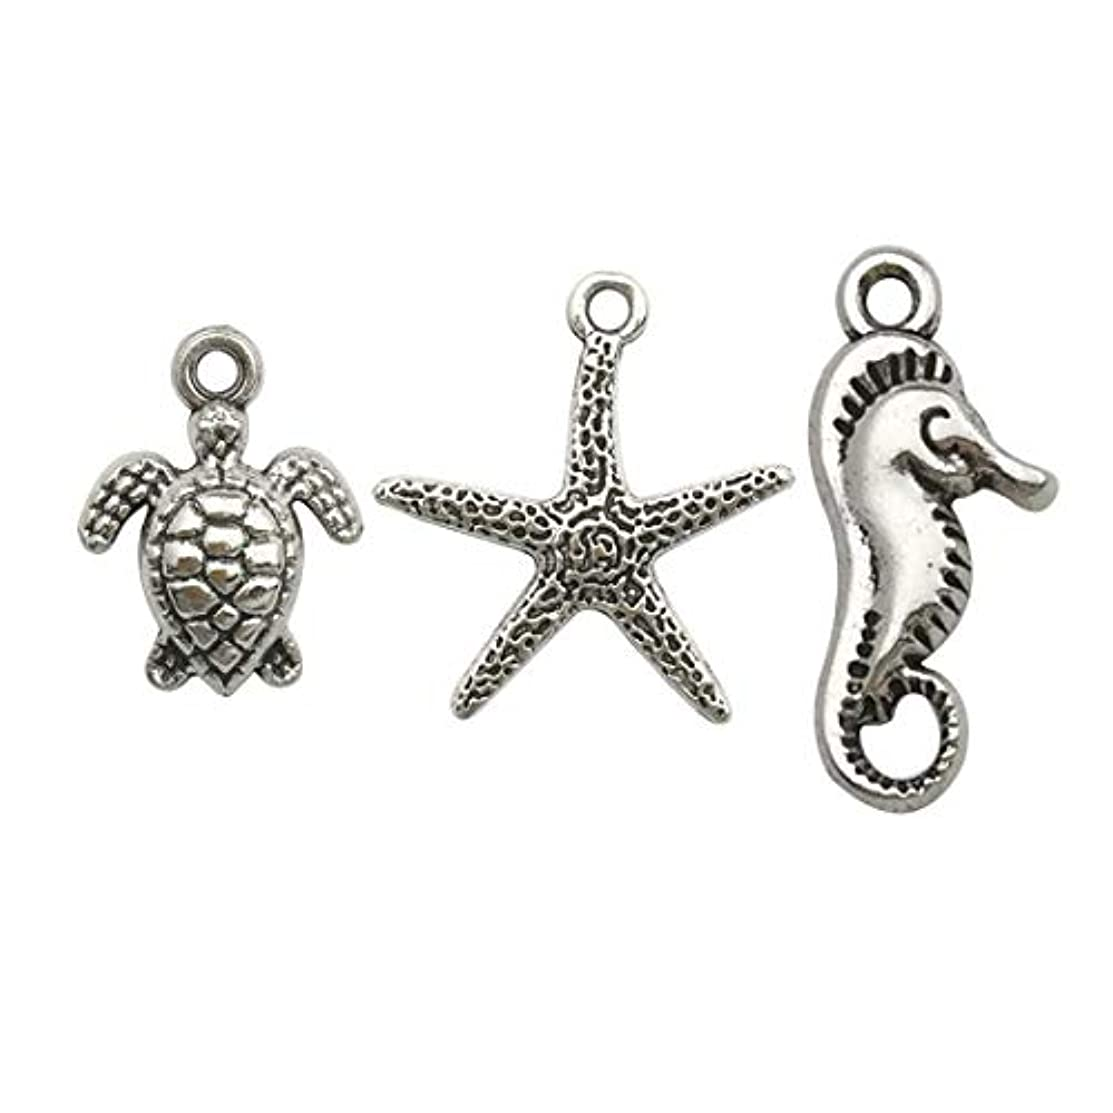 100g (75pcs) Craft Supplies Antique Silver Marine life Animals Turtle starfish Seahorse Charms Pendants for Crafting, Jewelry Findings Making Accessory For DIY Necklace Bracelet (Silver Marine Life)